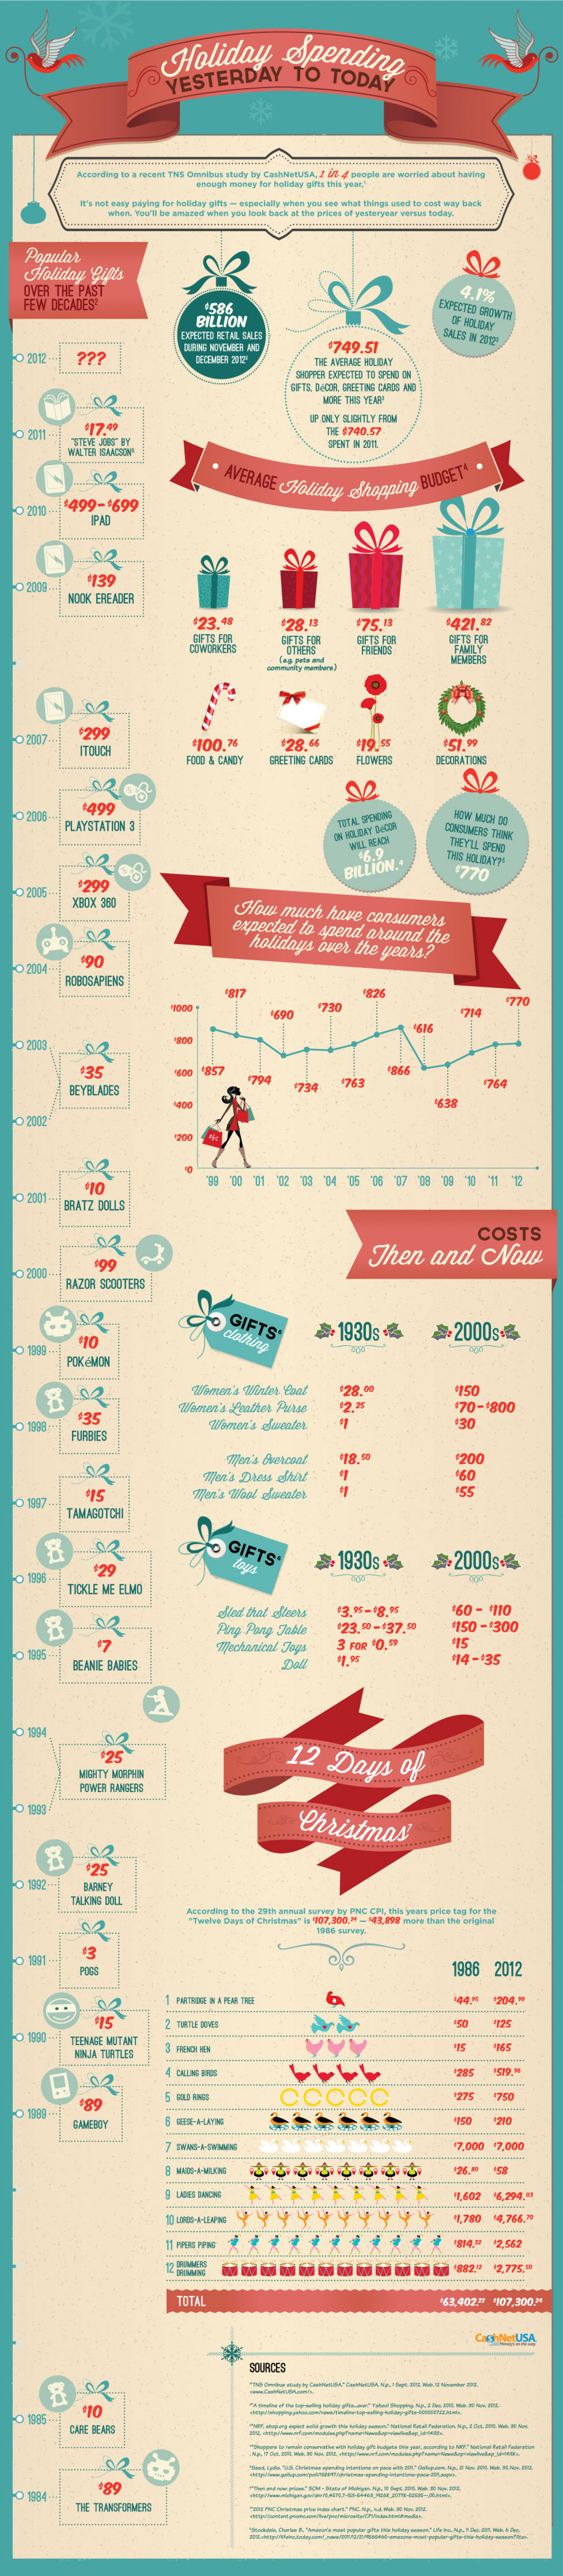 Holidays Yesterday to Today Infographic